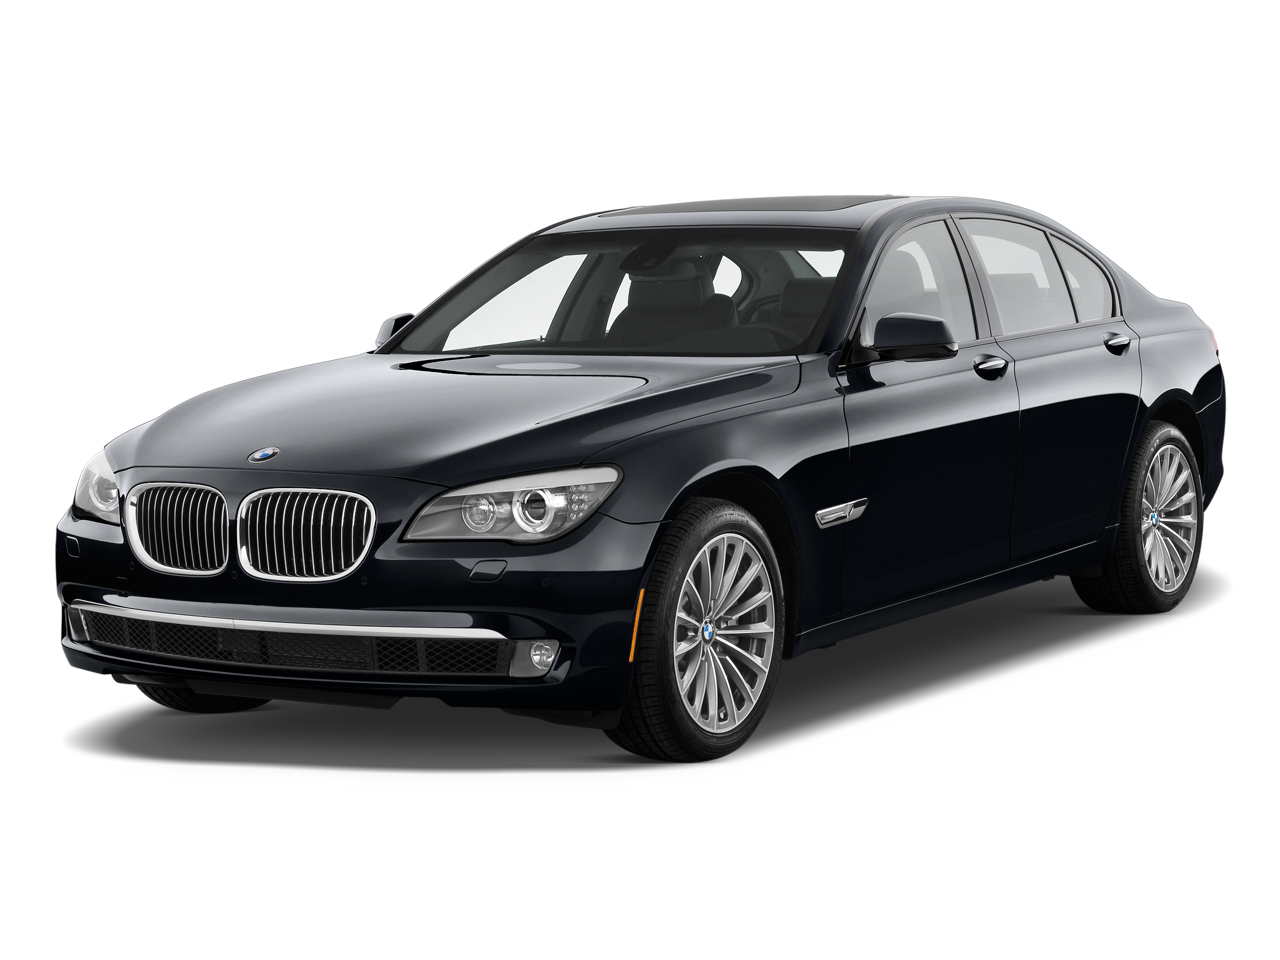 bmw 7 series 750i 750xi 750li 750lxi 2004 2015 workshop repair rh pagelarge com 2005 bmw 745li owners manual 2004 bmw 745li owners manual download